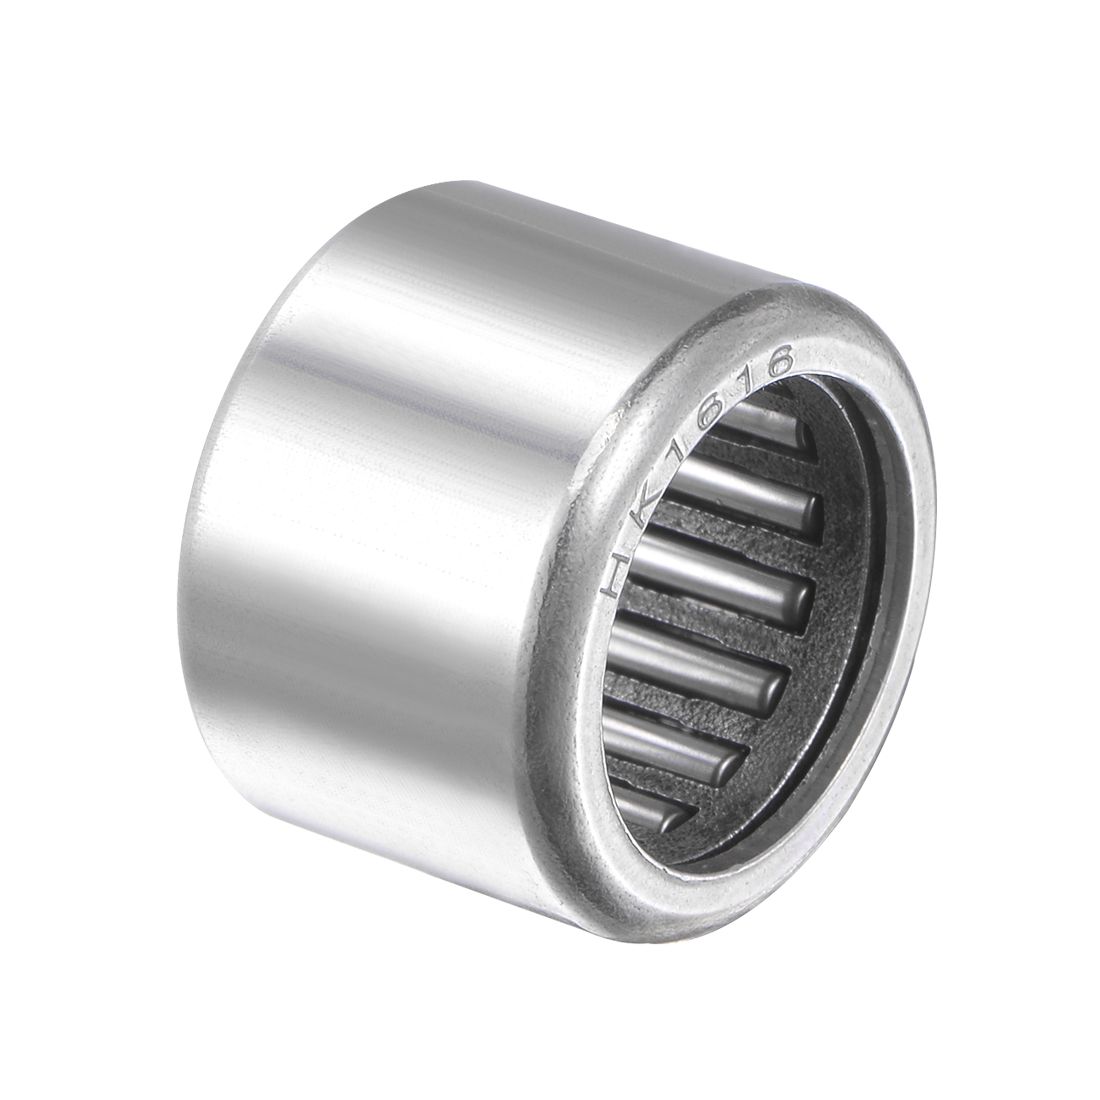 HK1616 Drawn Cup Needle Roller Bearings 16mm Bore, 22mm OD, 16mm Width